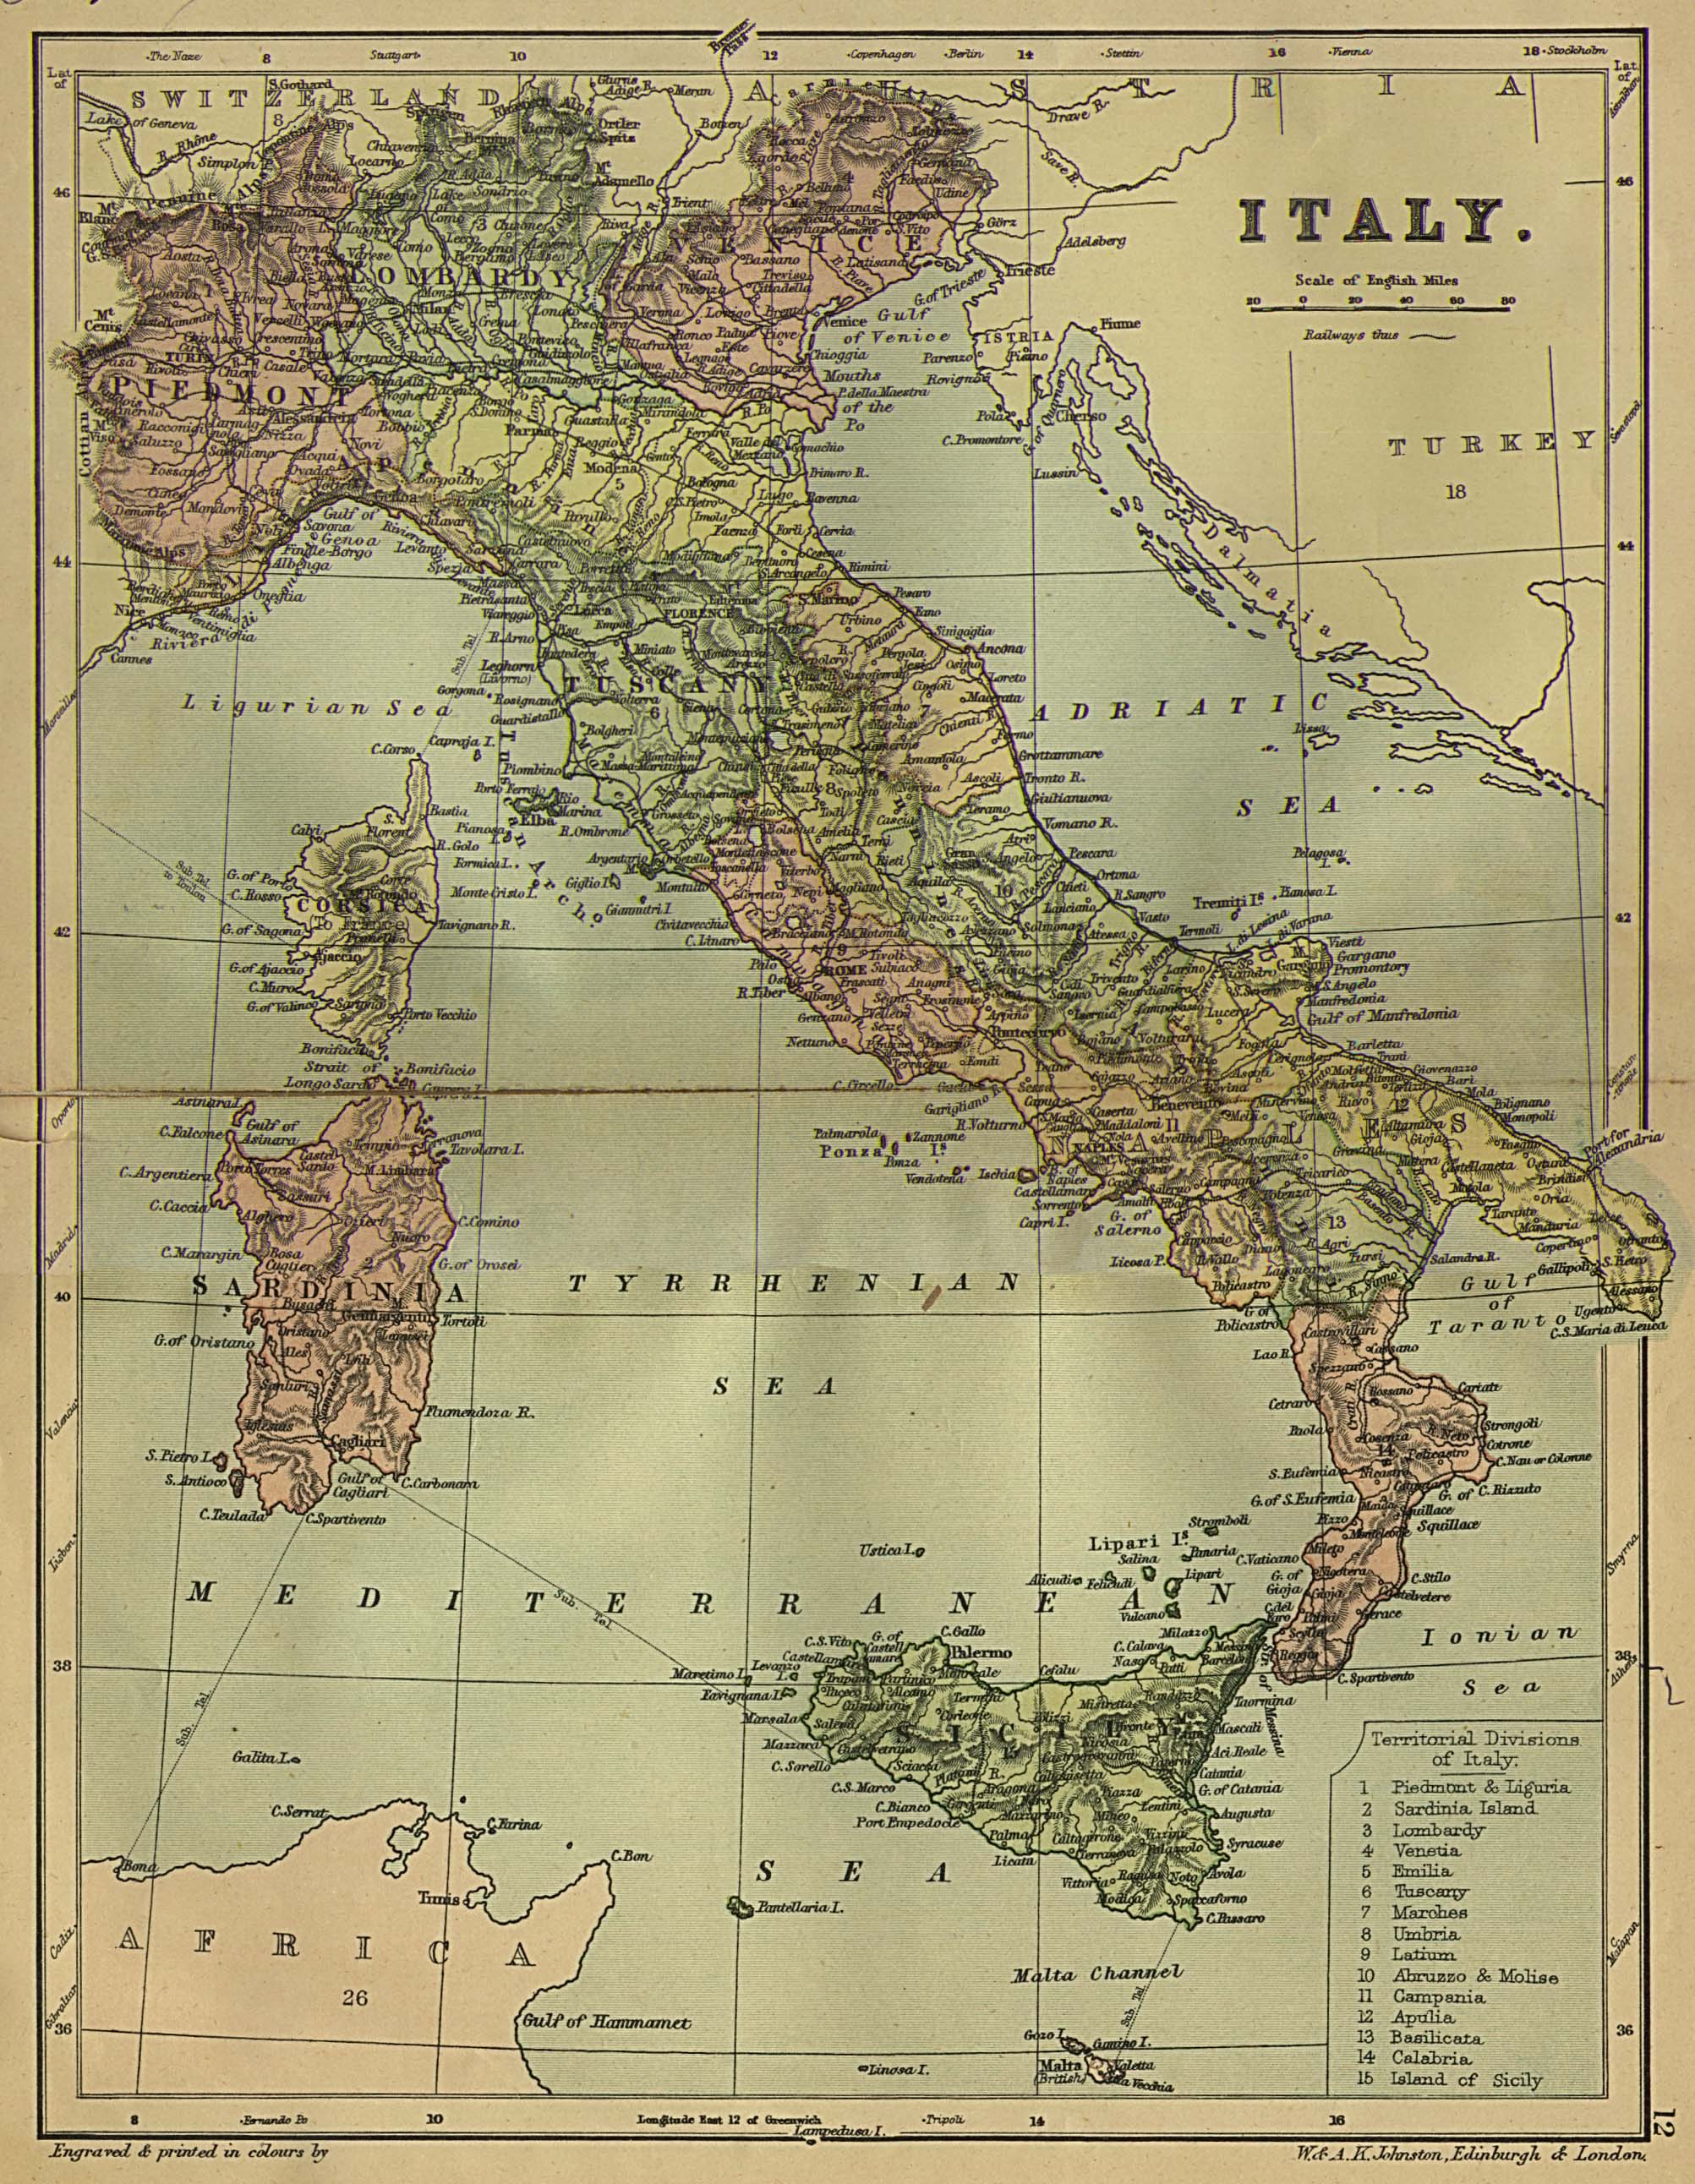 Italy Map 1500.Italy Maps Perry Castaneda Map Collection Ut Library Online